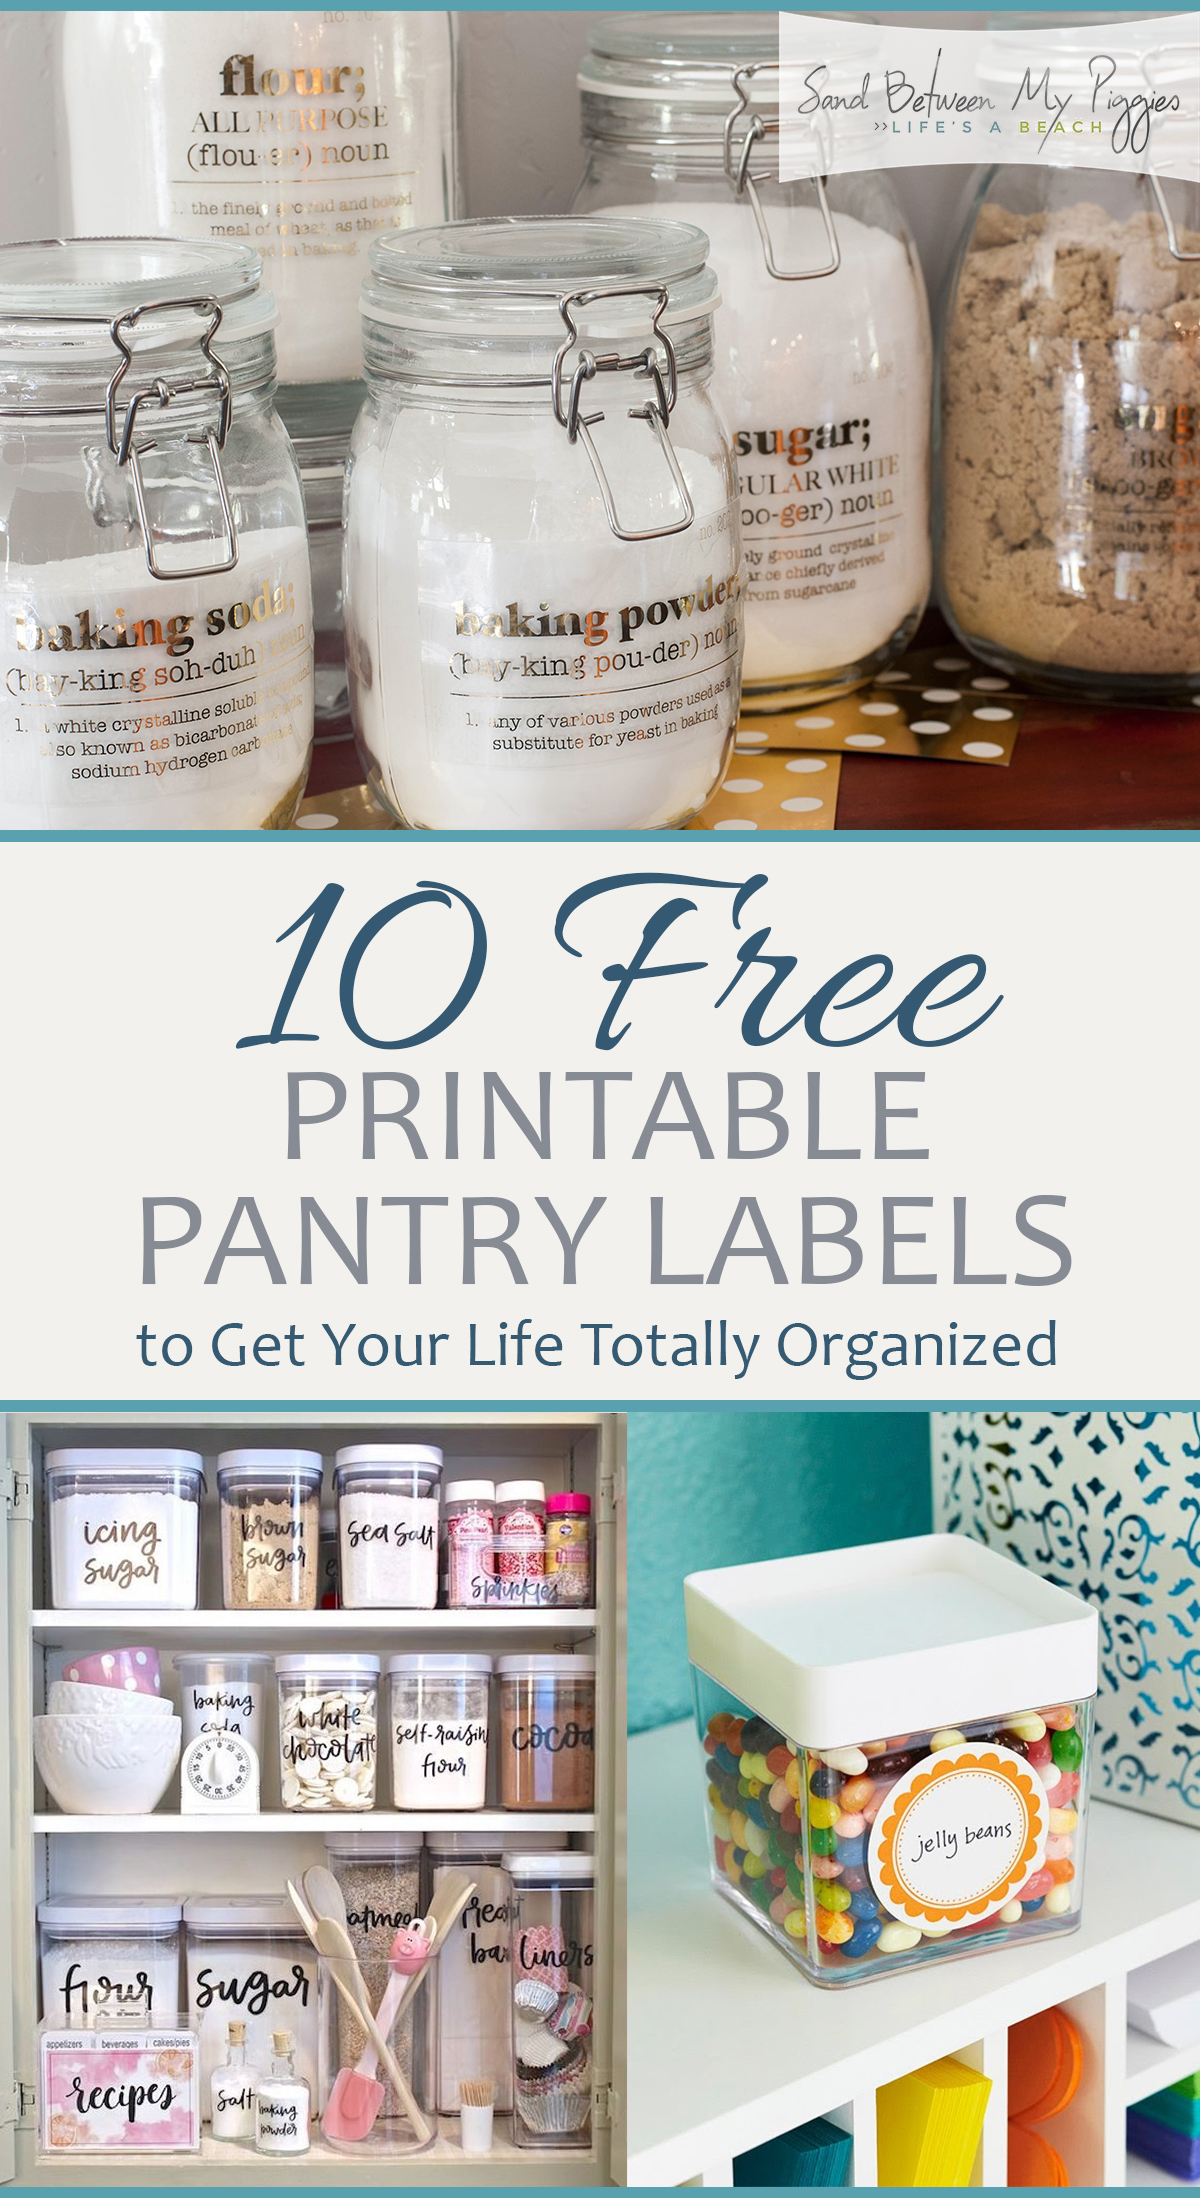 10 Free Printable Pantry Labels To Get Your Life Totally Organized